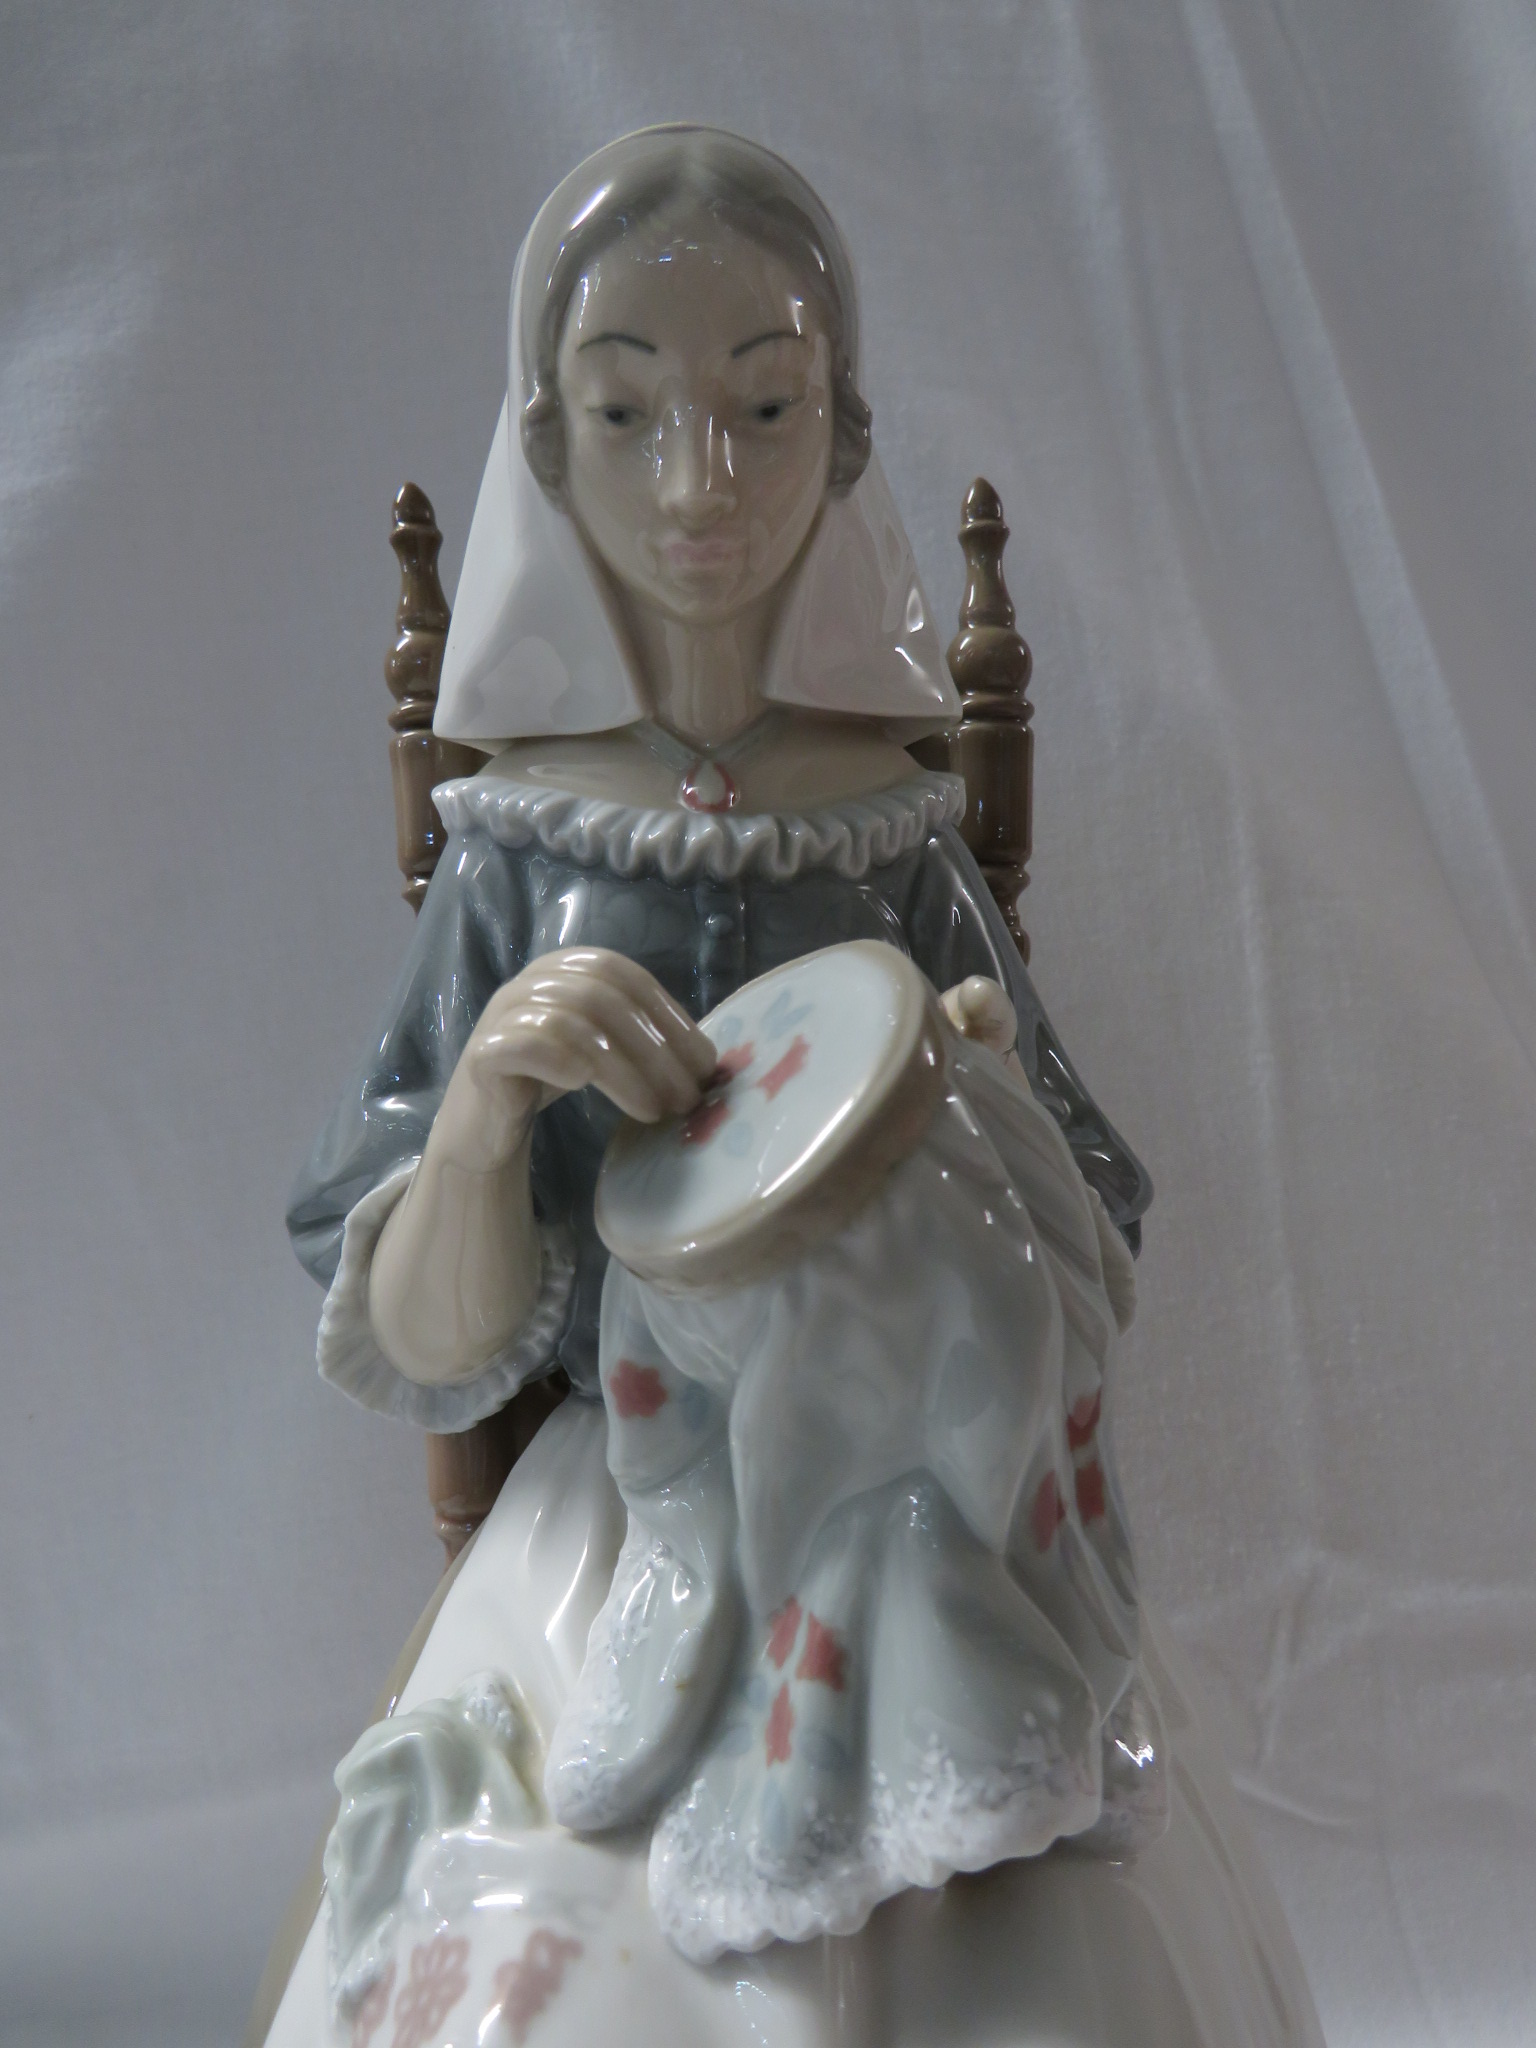 Lot 56 - Lladro porcelain figure of a woman with embroidery seated on a spindle turned chair (height 28cm)